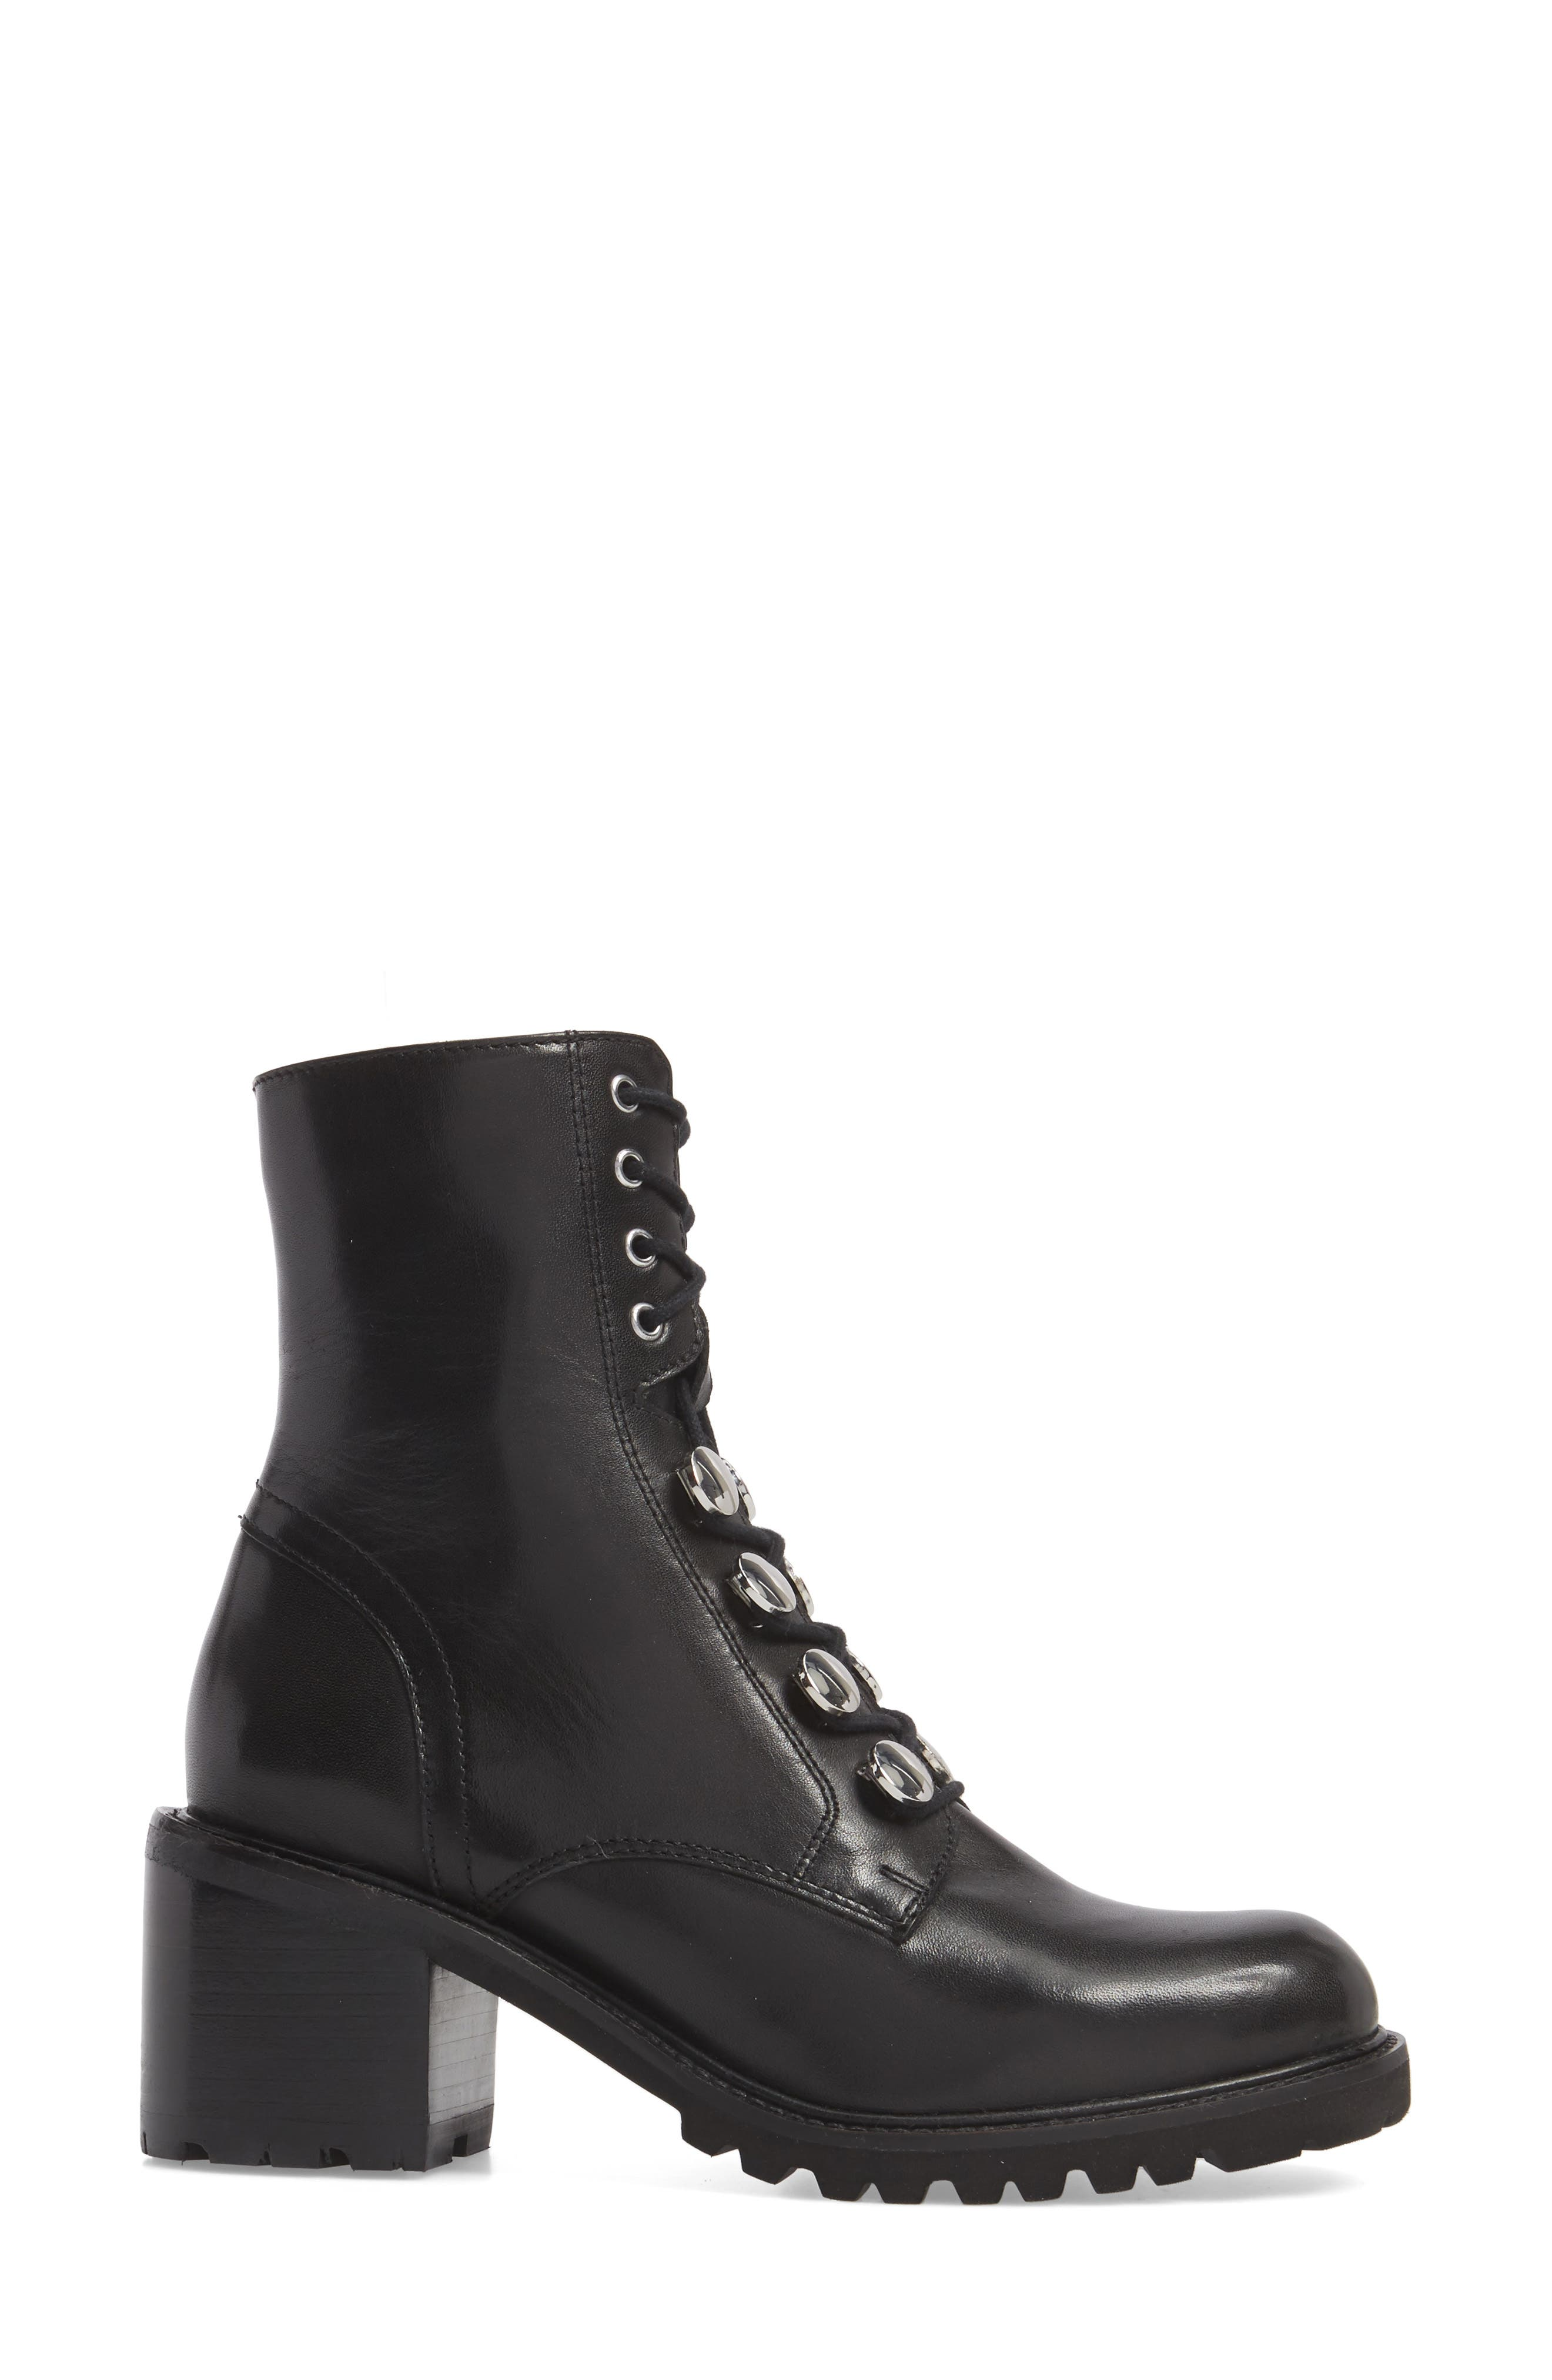 Make it Count Lace-Up Boot,                             Alternate thumbnail 3, color,                             Black Leather